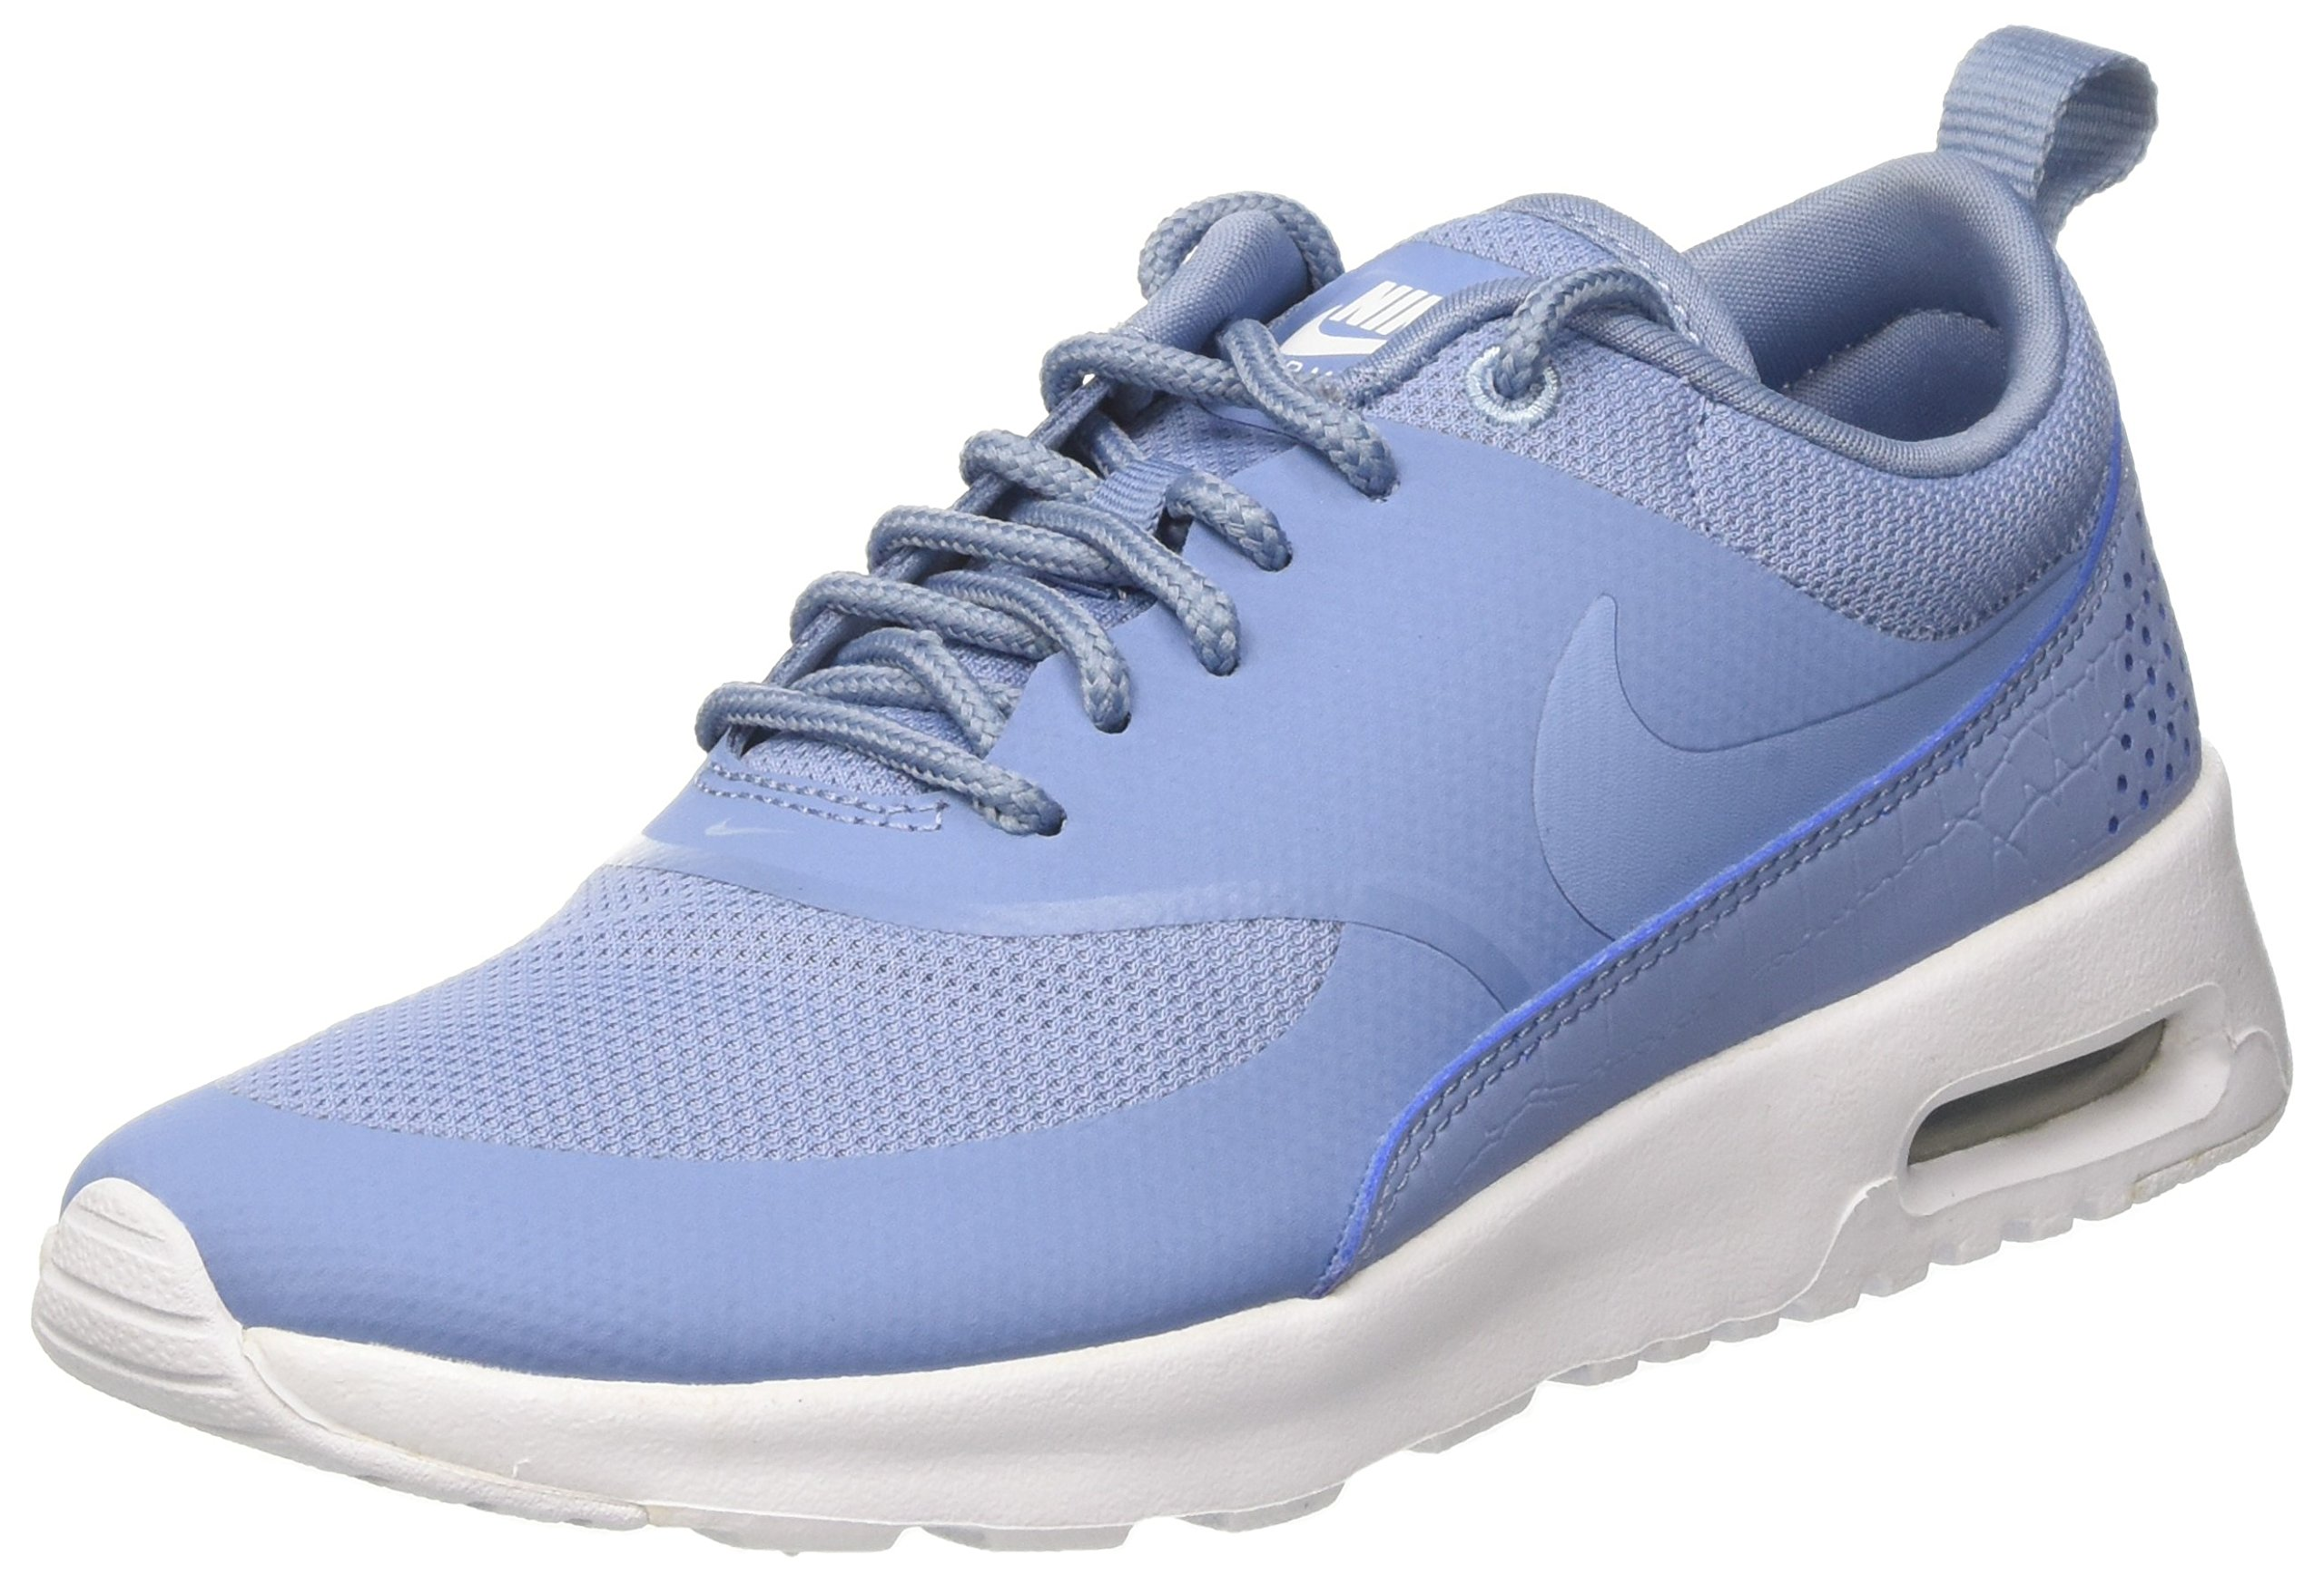 Details about Nike Women's Air Max Thea Low Top Sneakers, (WhiteBlack 11M)